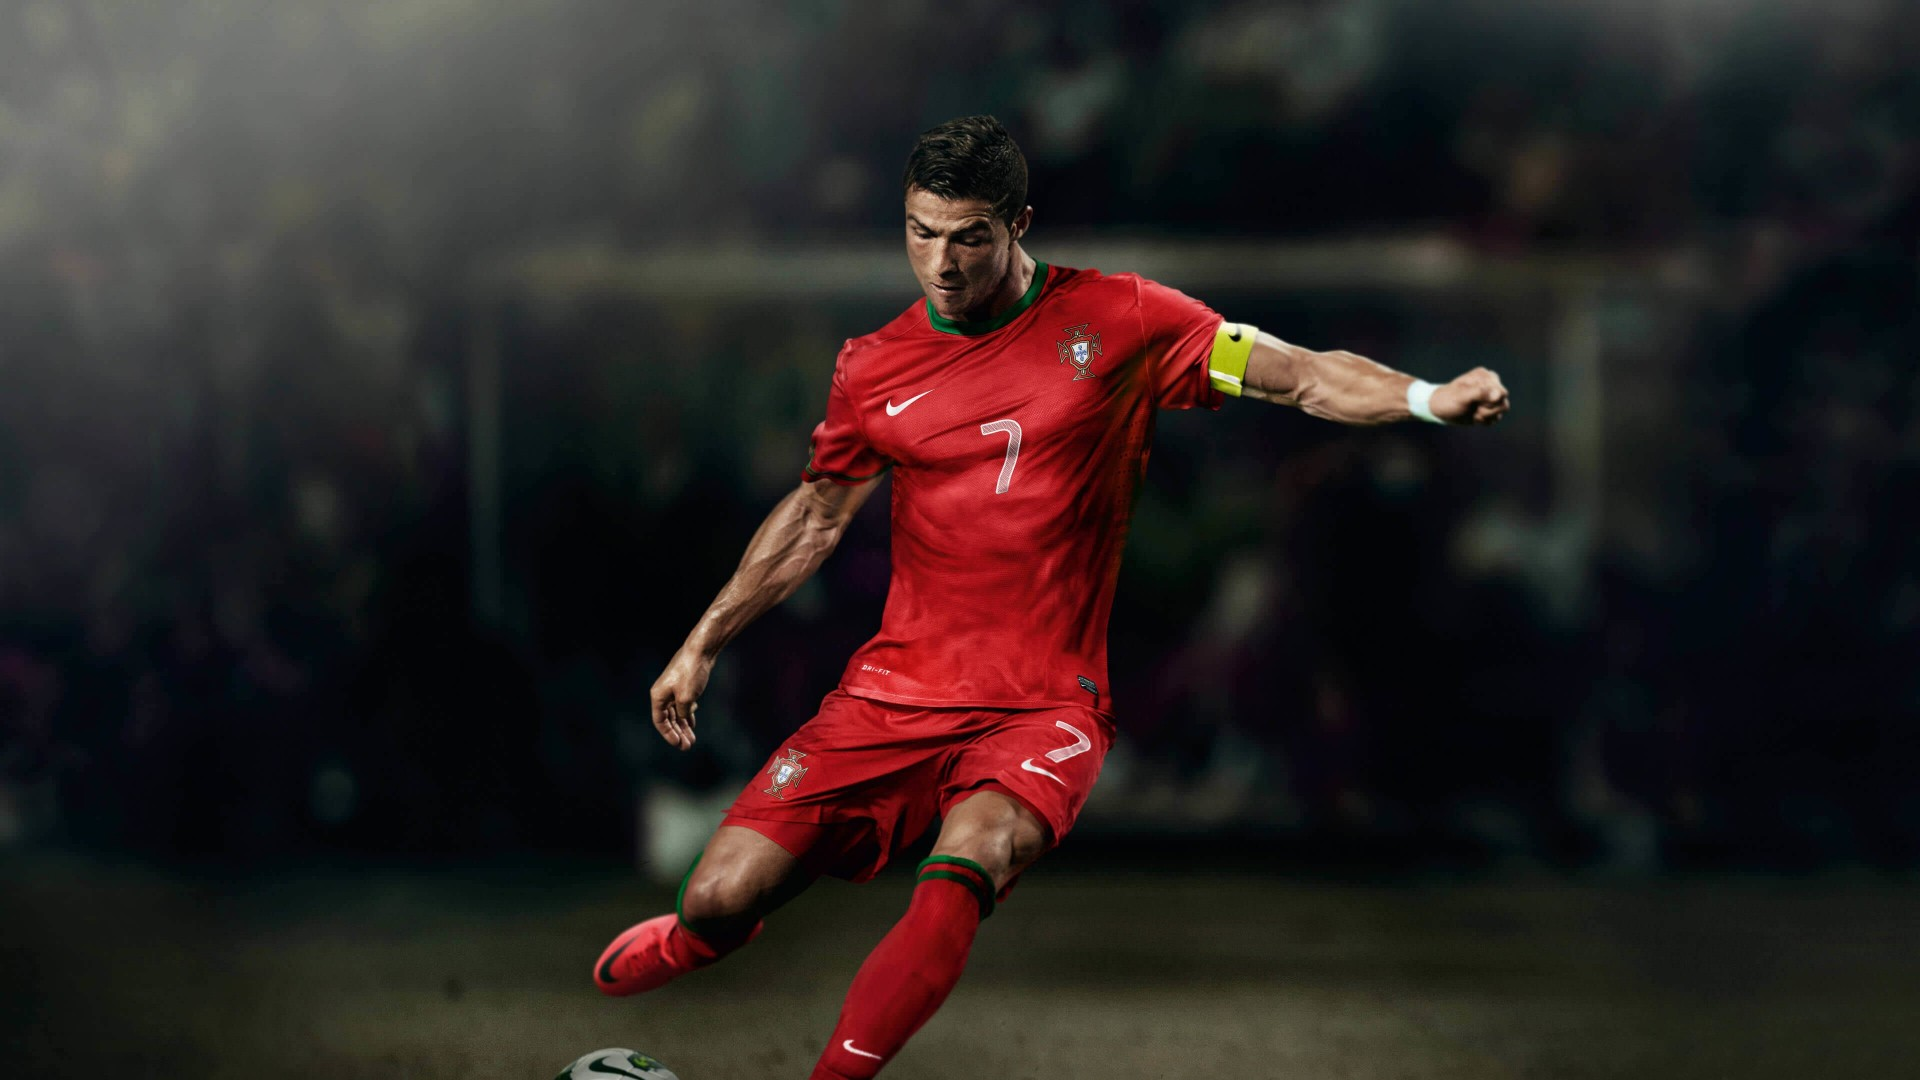 Cristiano Ronaldo In Portugal Jersey Wallpaper for Desktop 1920x1080